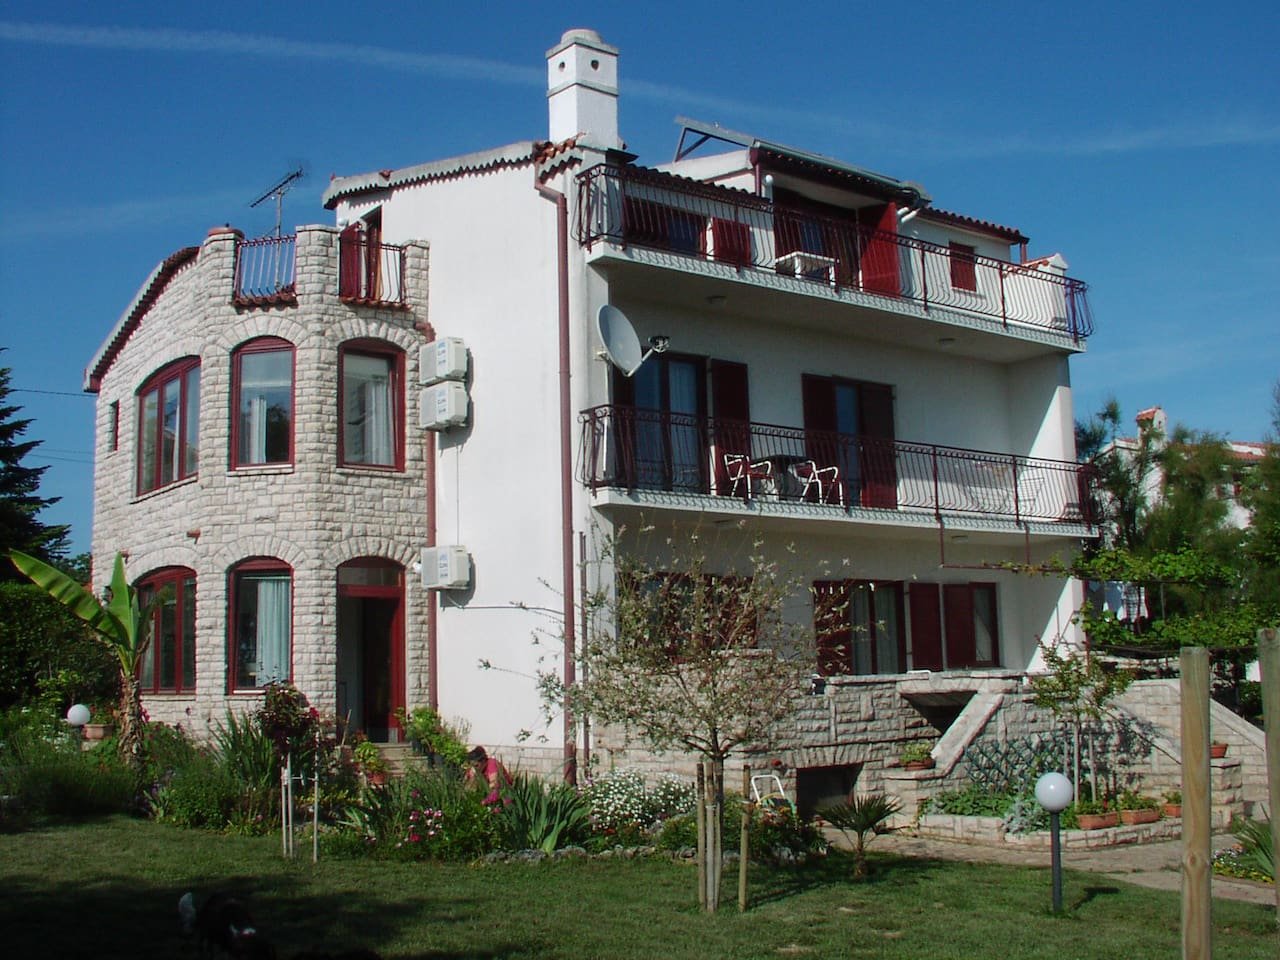 Our family house, apartmant is located on the ground floor